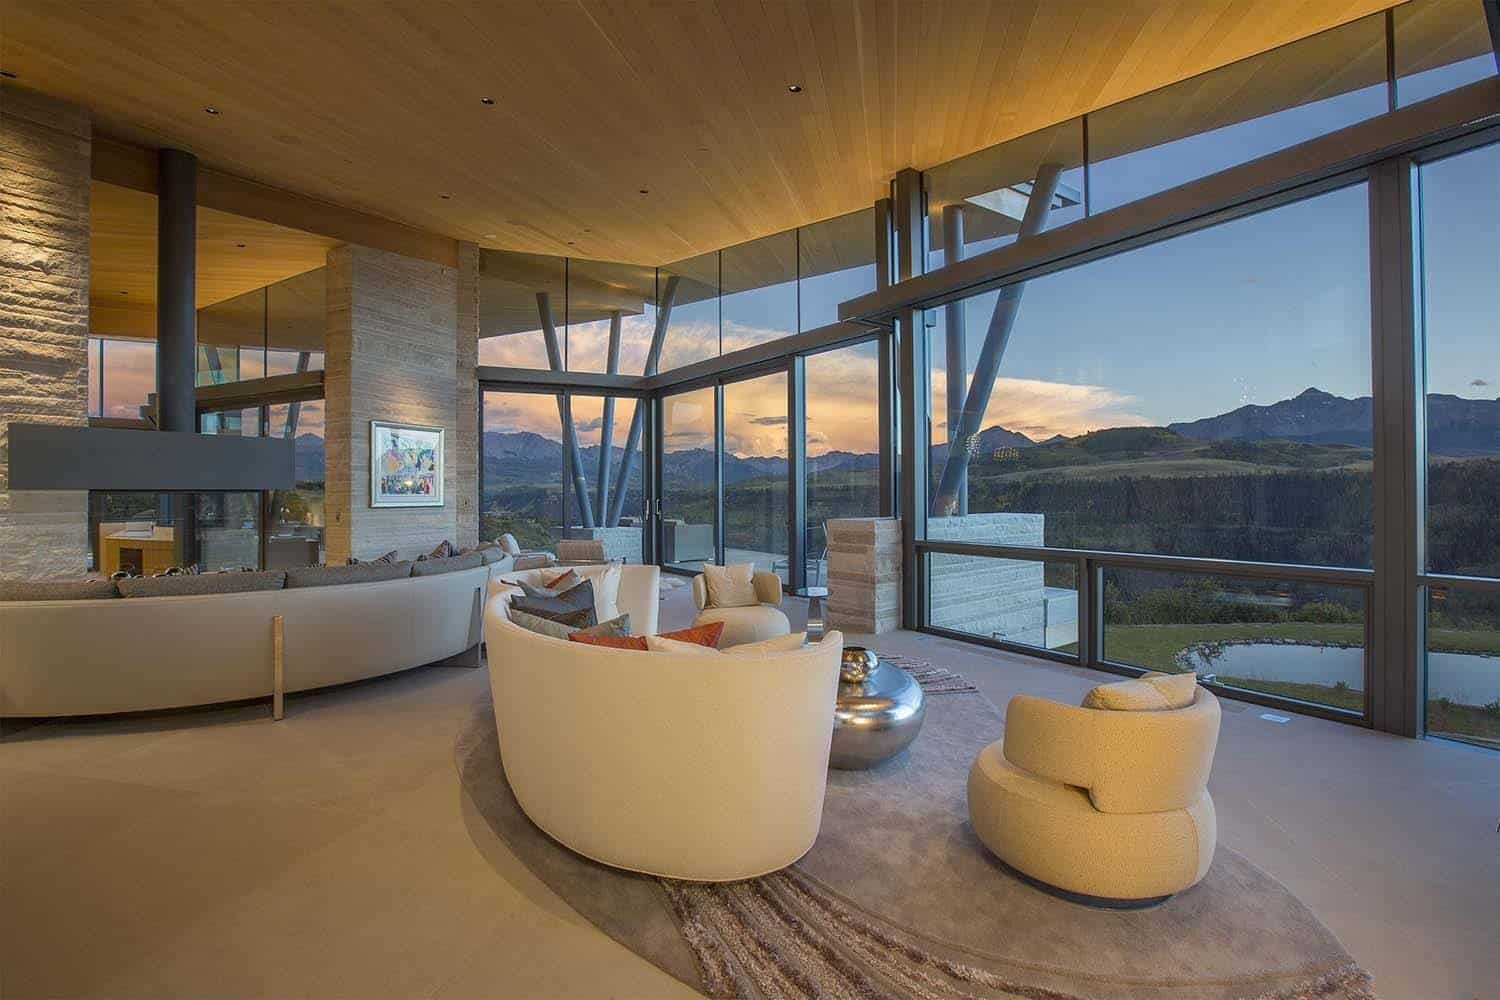 Modern-Residence-Colorado-Poss Architecture-14-1 Kindesign